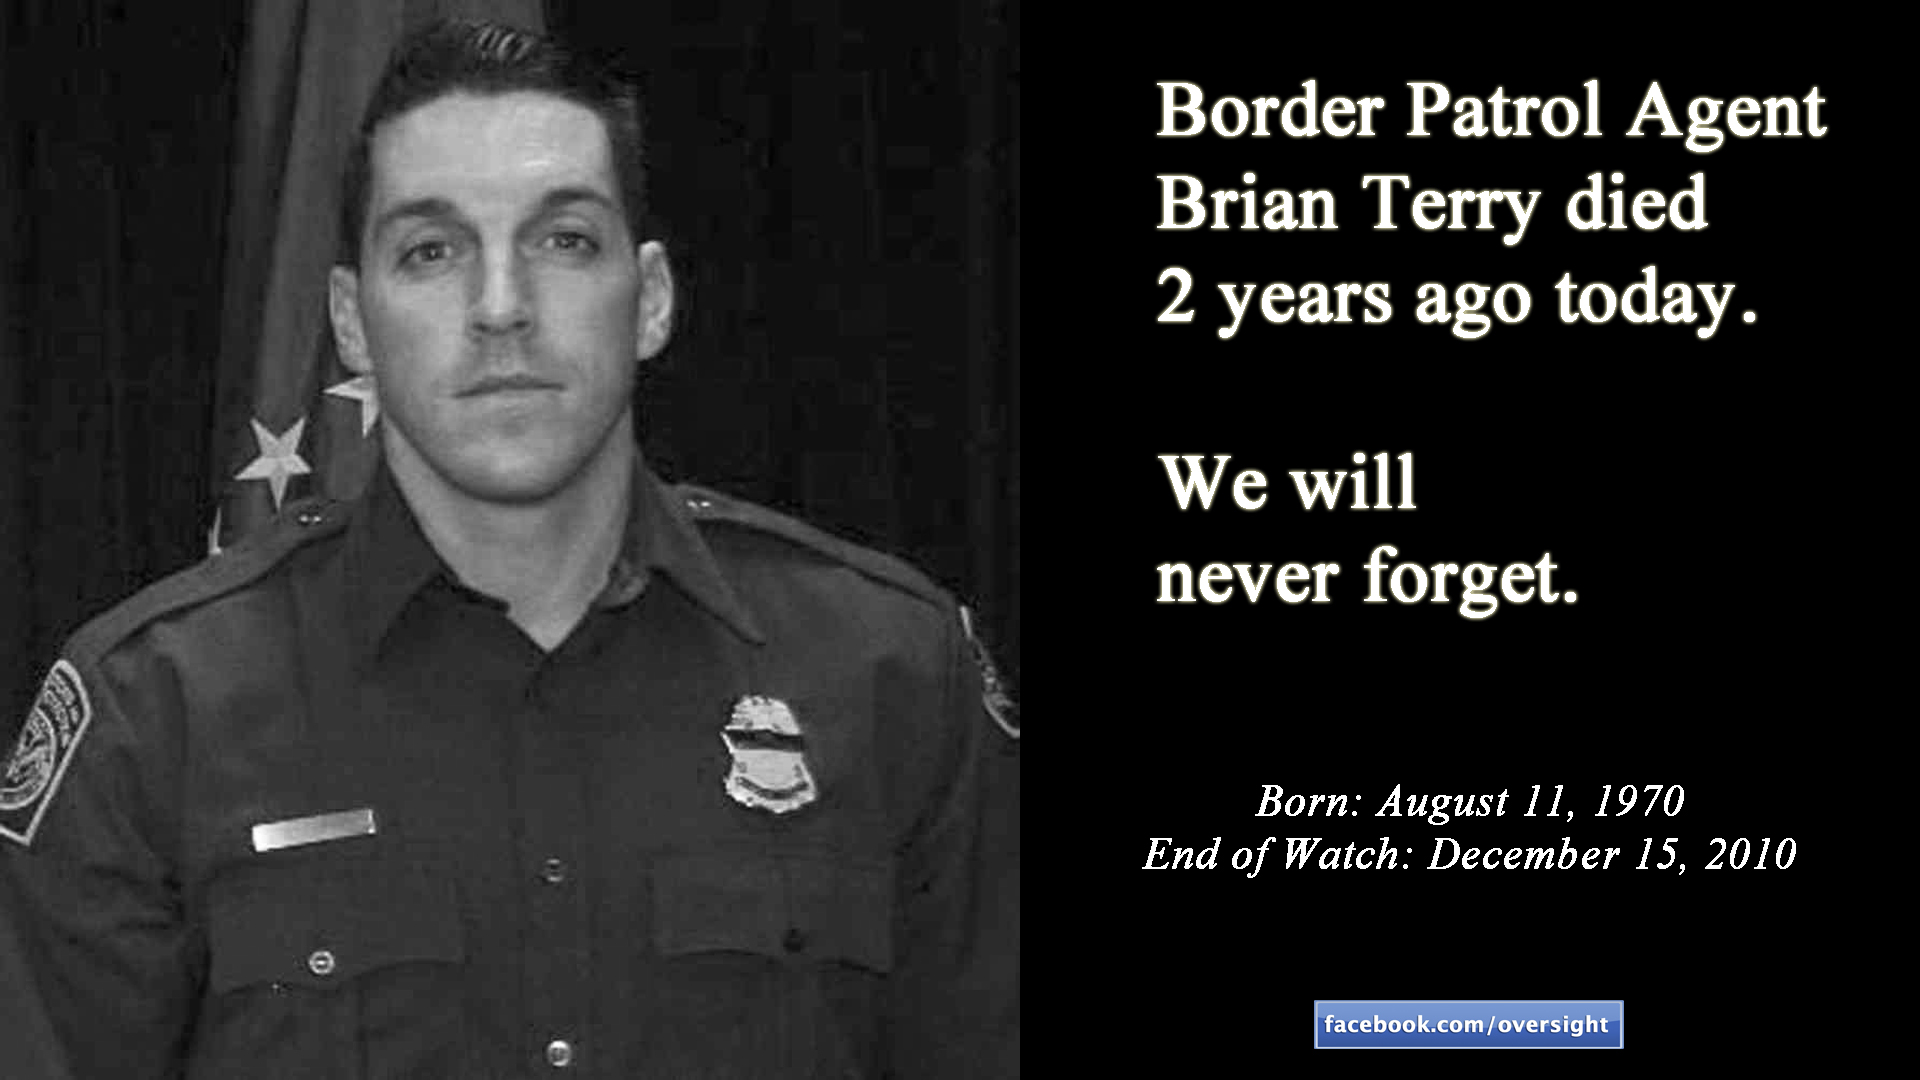 Honoring the Life of Fallen Border Patrol Agent Terry